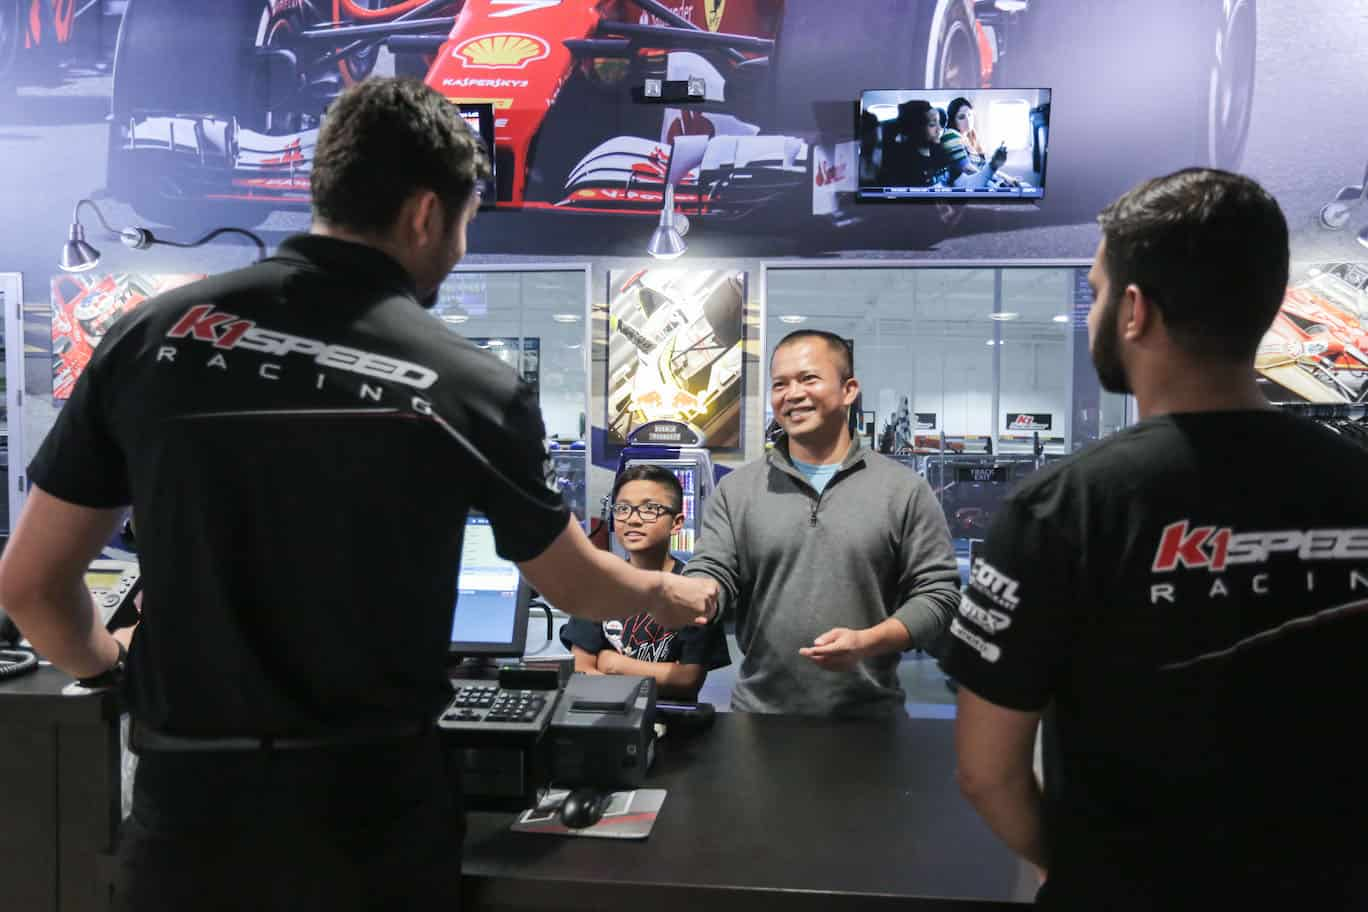 K1 Speed Groupon: Important Information | K1 Speed